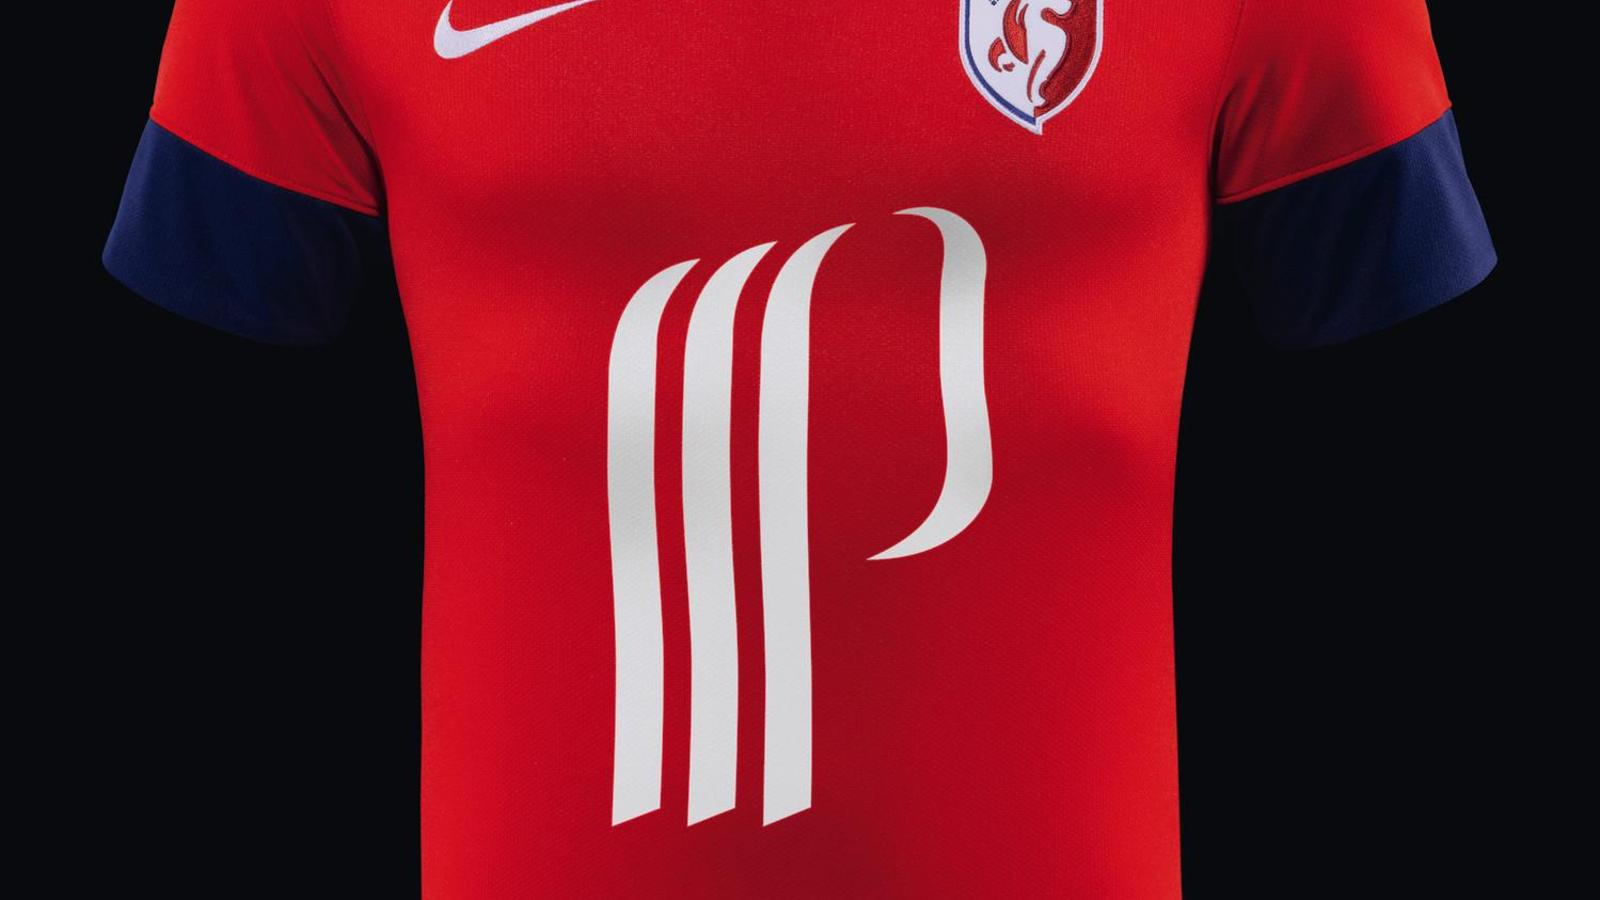 Losc Lille And Nike Unveil Home Away And Third Kits For 2013 14 Season Nike News